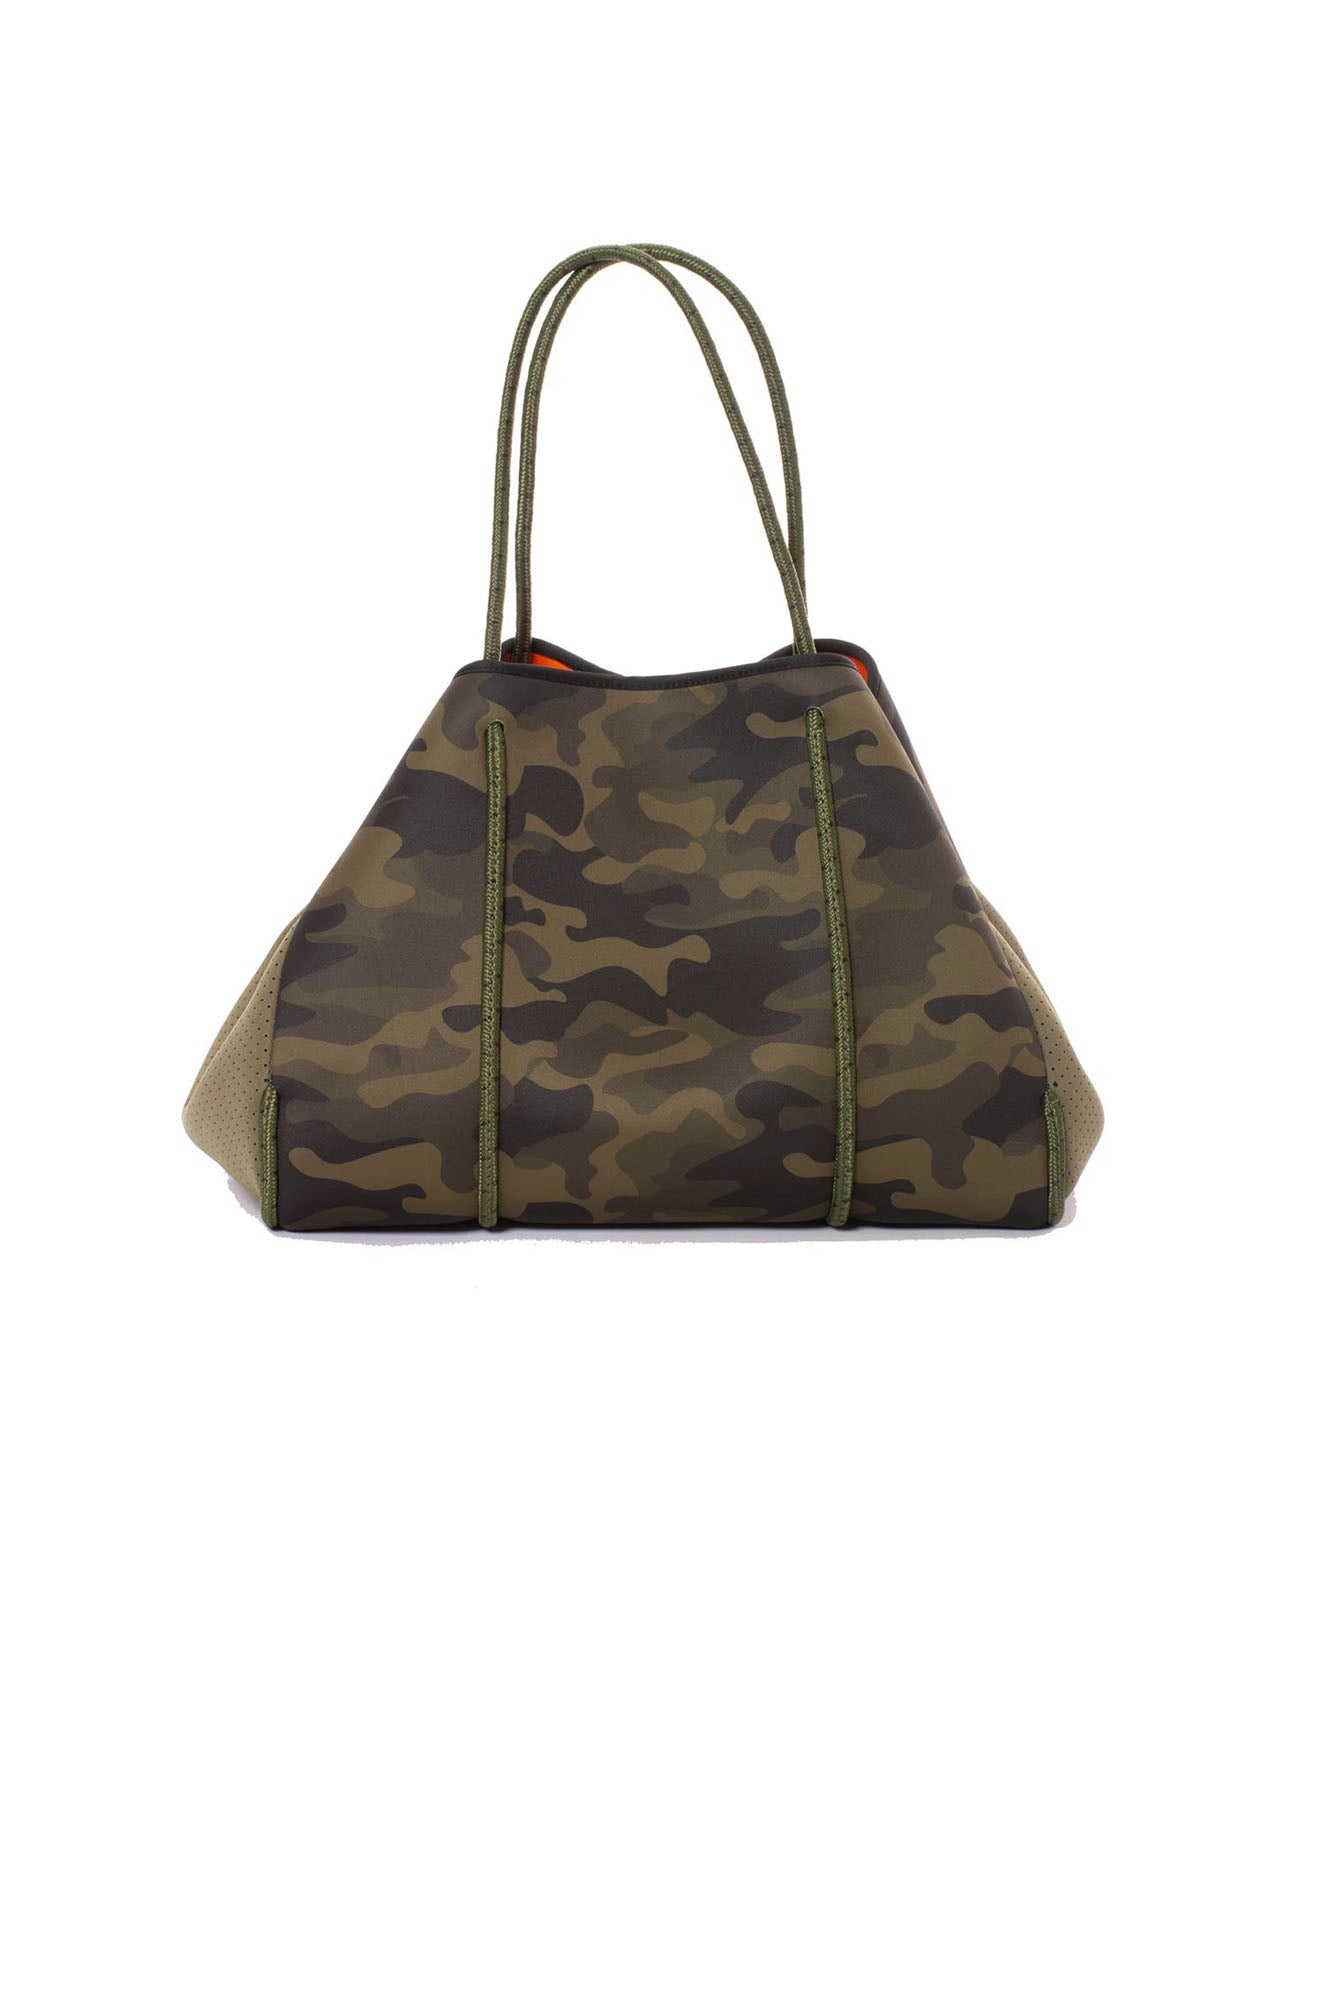 Haute Shore - Greyson Remix Neoprene Tote Bag w/Zipper and Wristlet Inside (greyson remix, Camo & Orange)